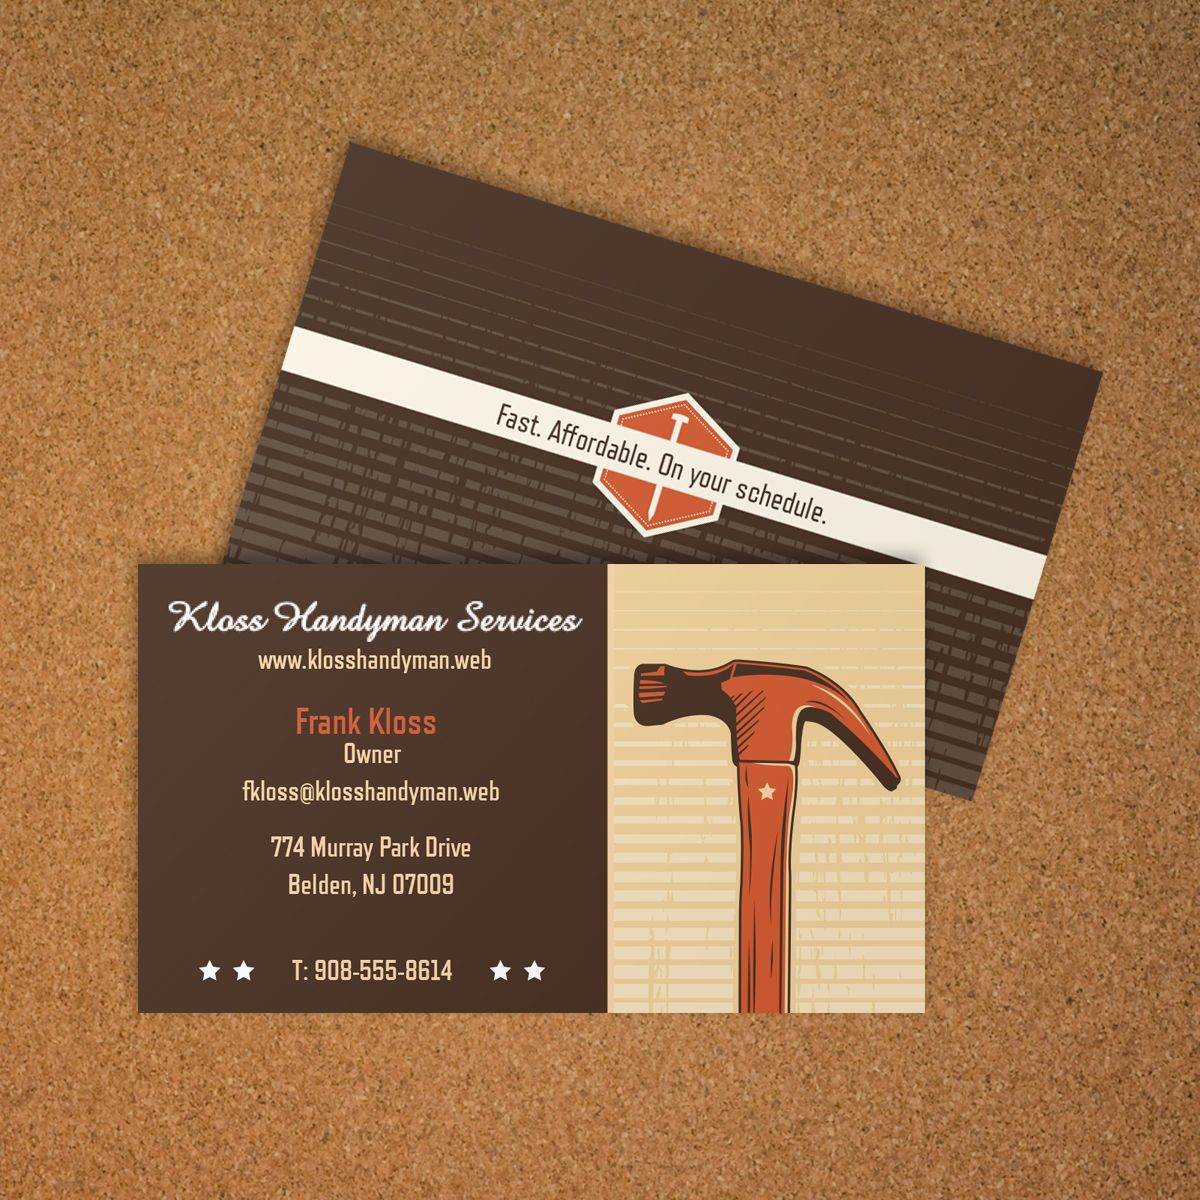 General contractor business card vistaprint business card general contractor business card vistaprint magicingreecefo Image collections